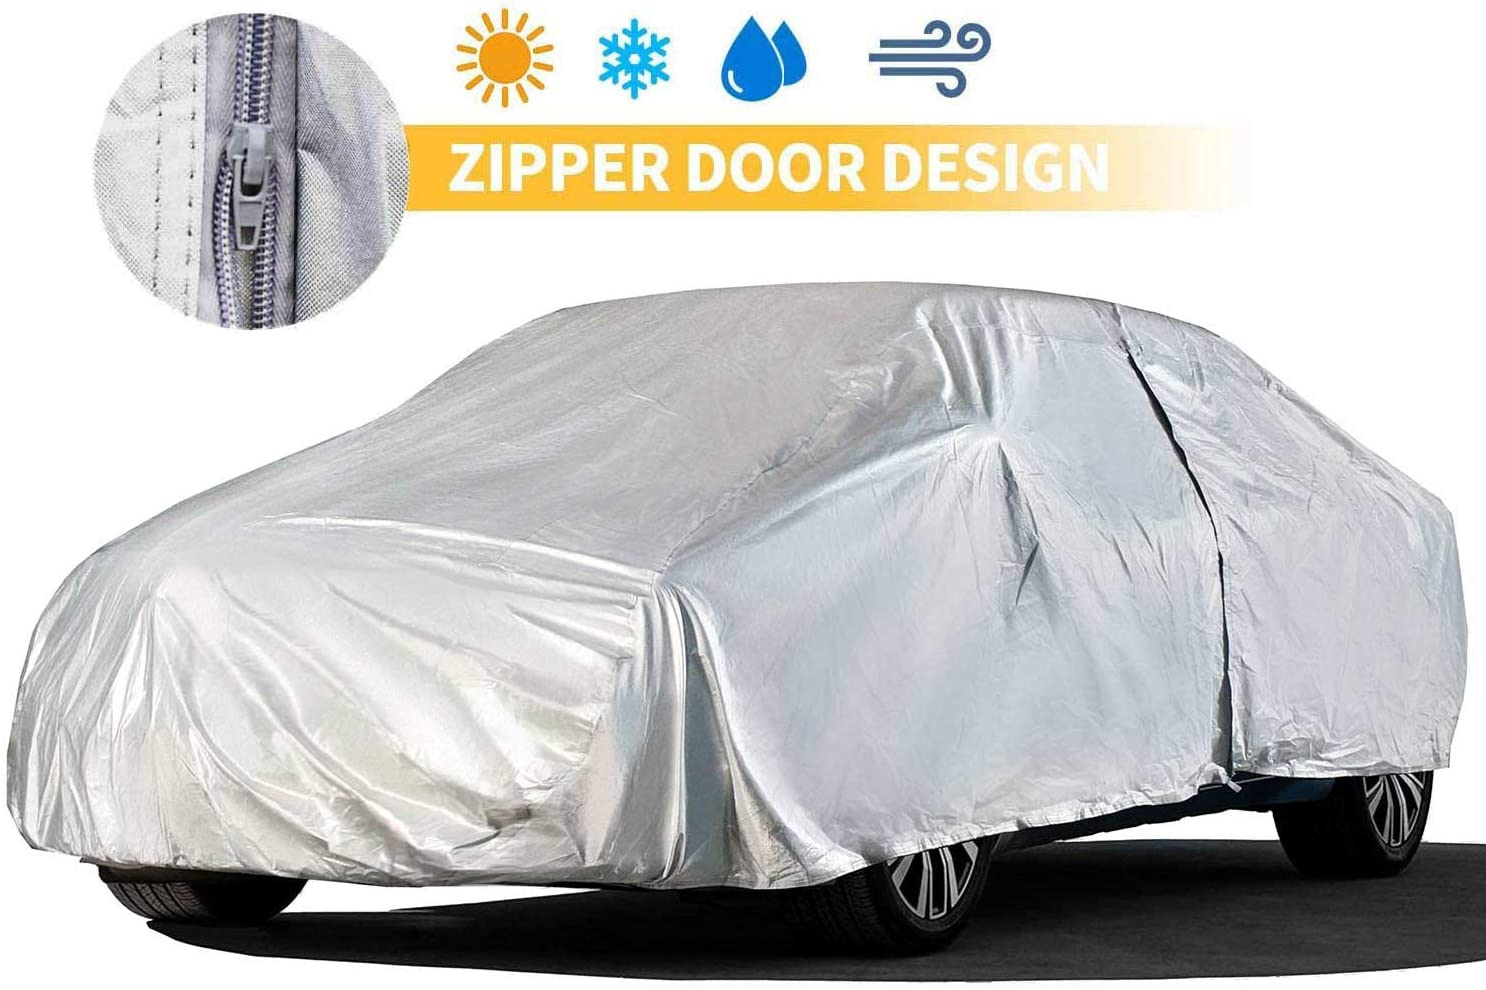 Sedan Car Cover for UV Resistant Driv Outdoor 228 Inch Finally popular New products, world's highest quality popular! brand